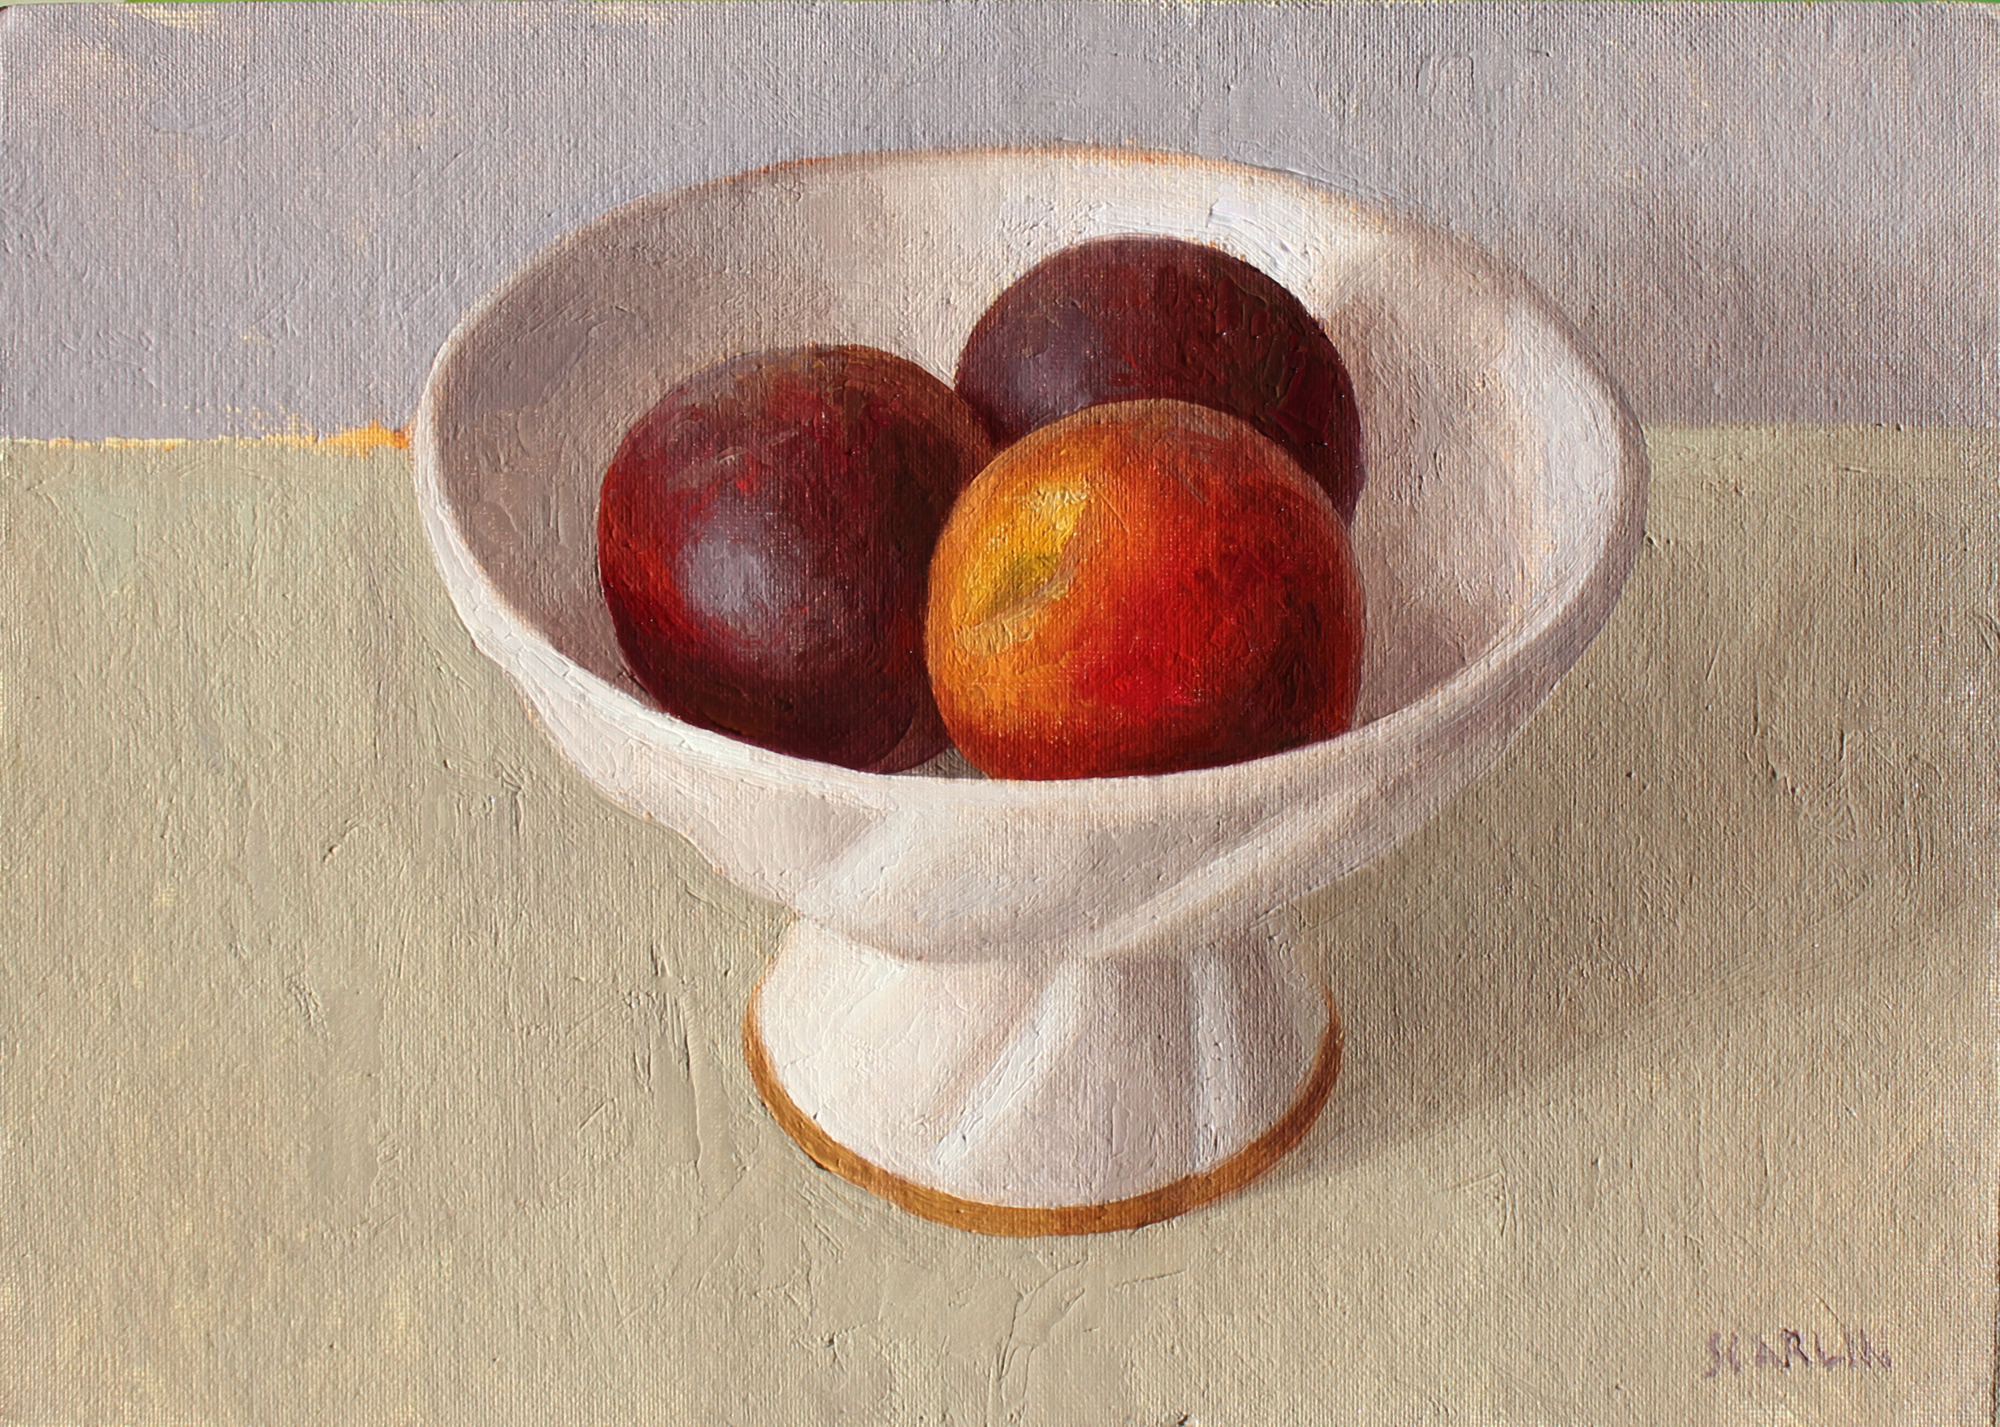 Three peaches  Oil on canvas board 25x35cm  2019  Private collection